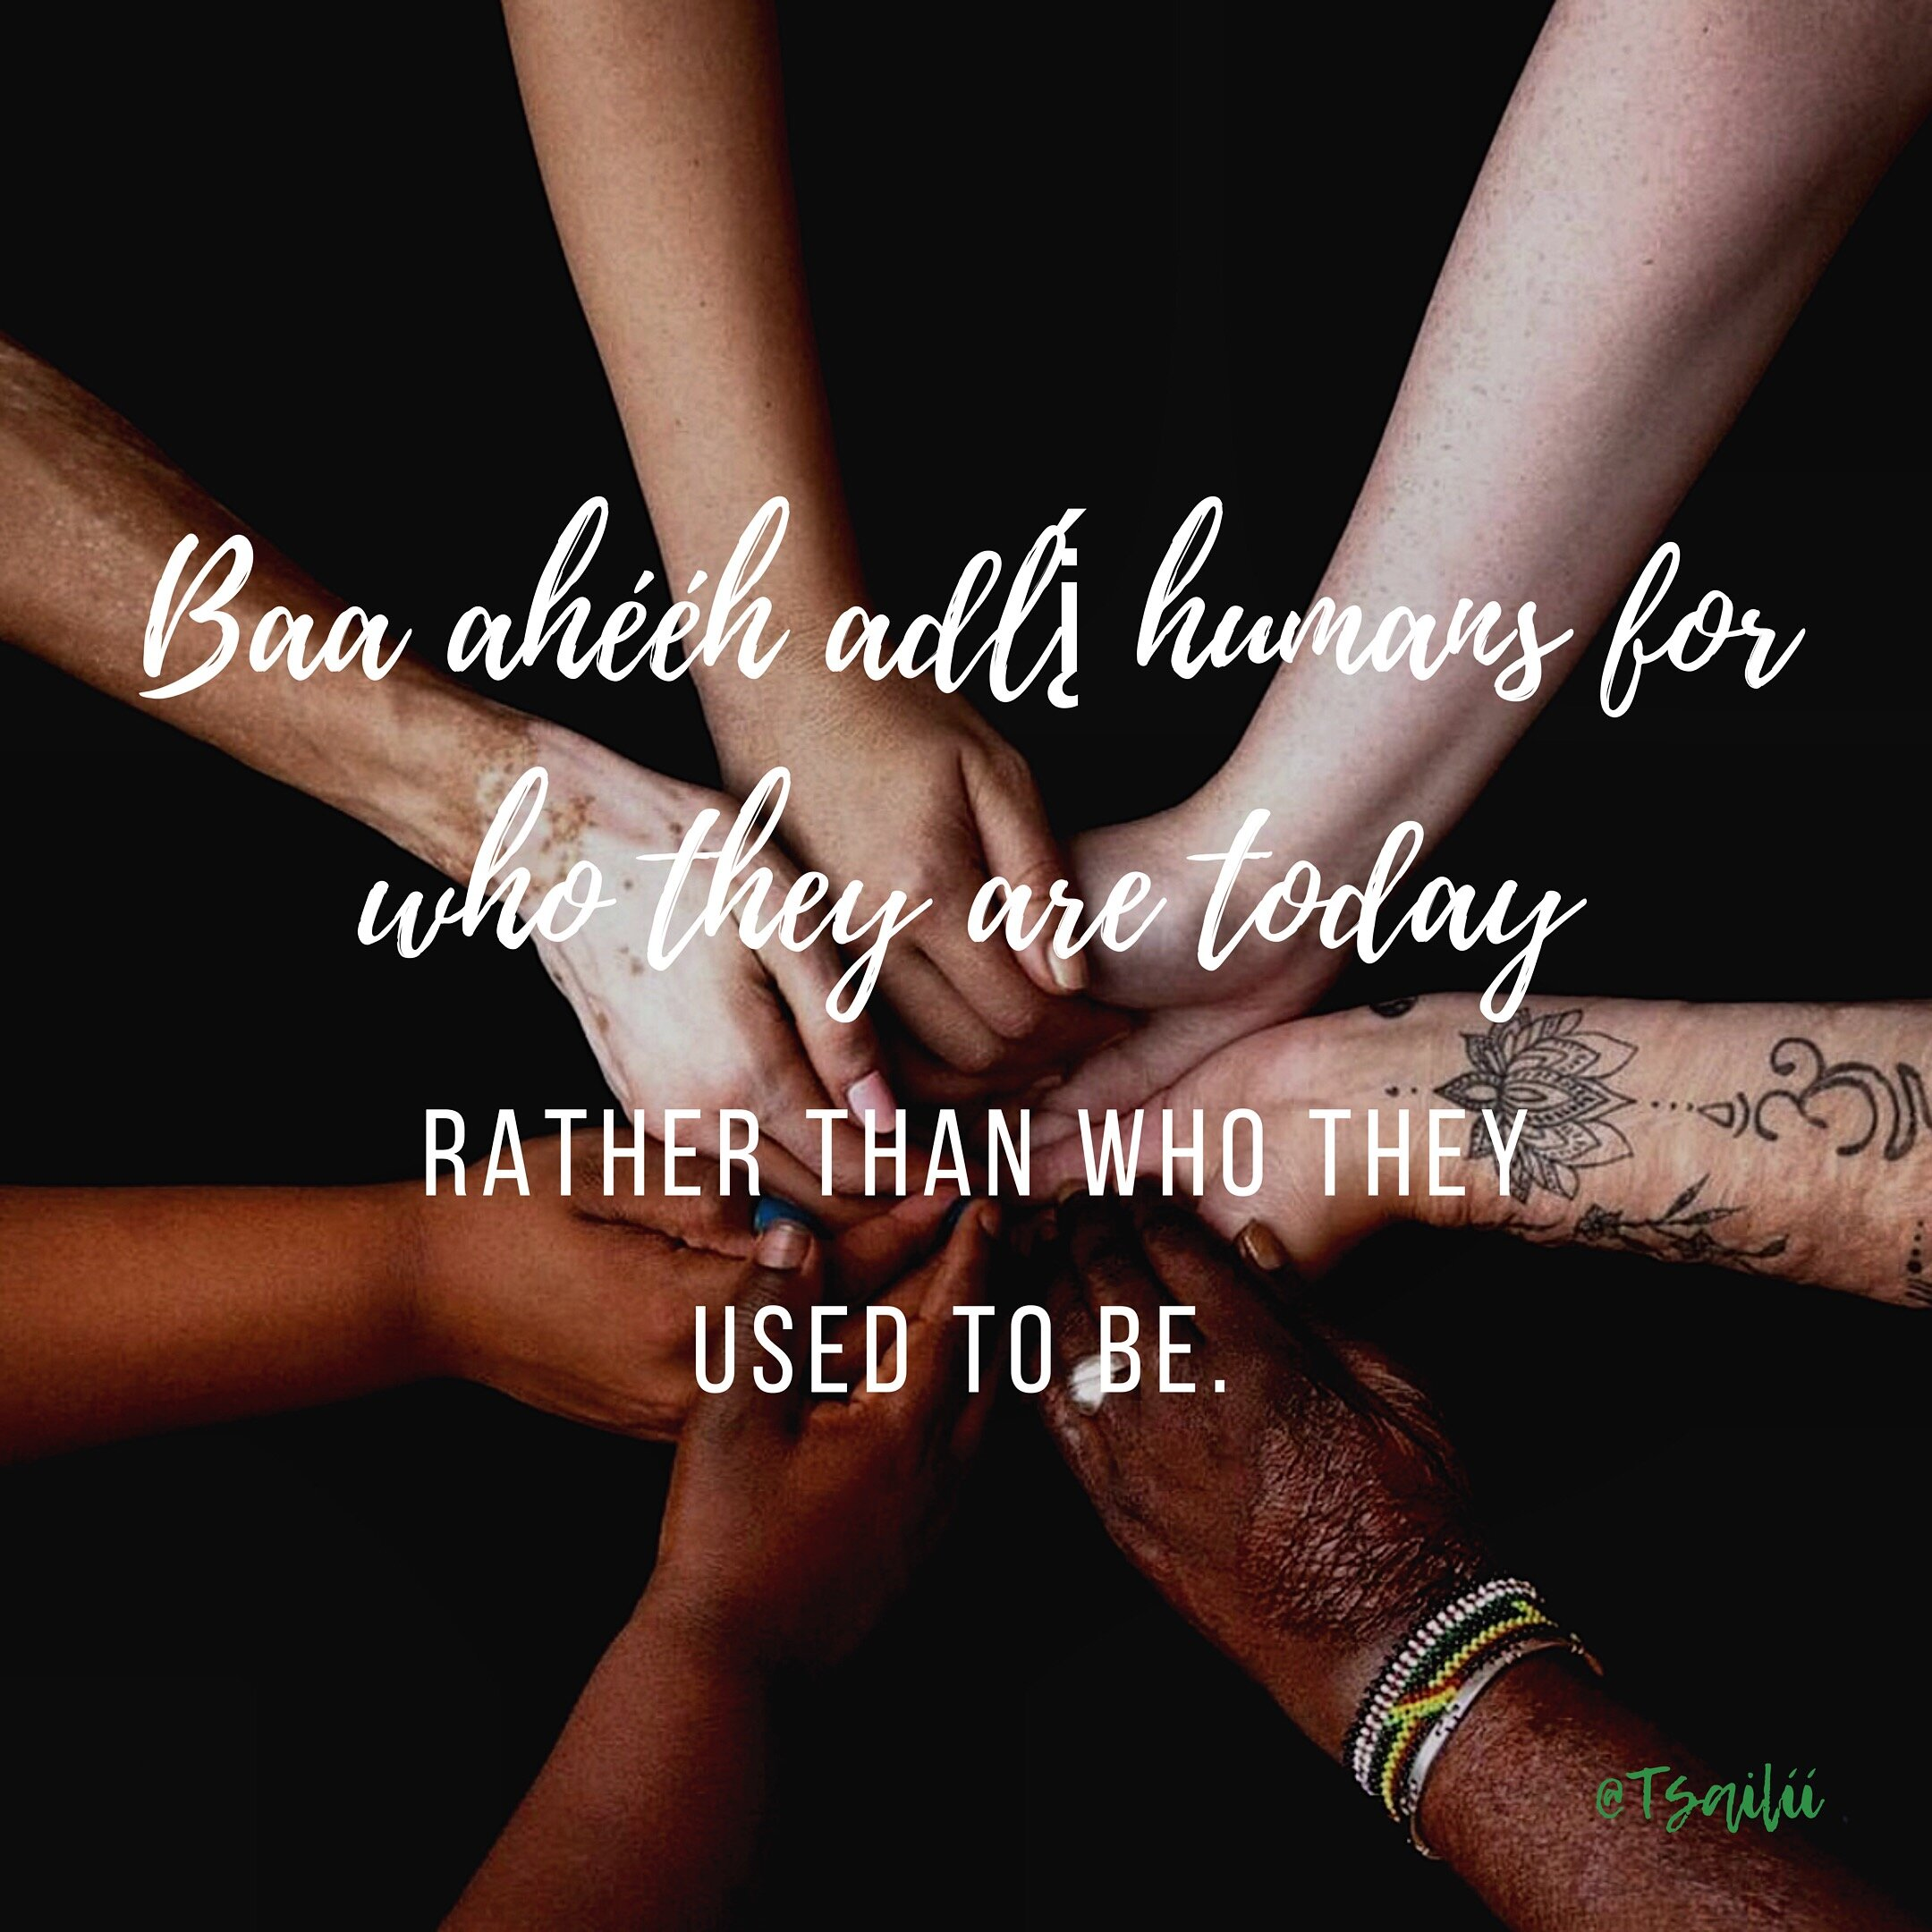 Baa ahééh ajlį (Appreciate) humans for who they are today rather than who they used to be. @Tsailii, Instagram